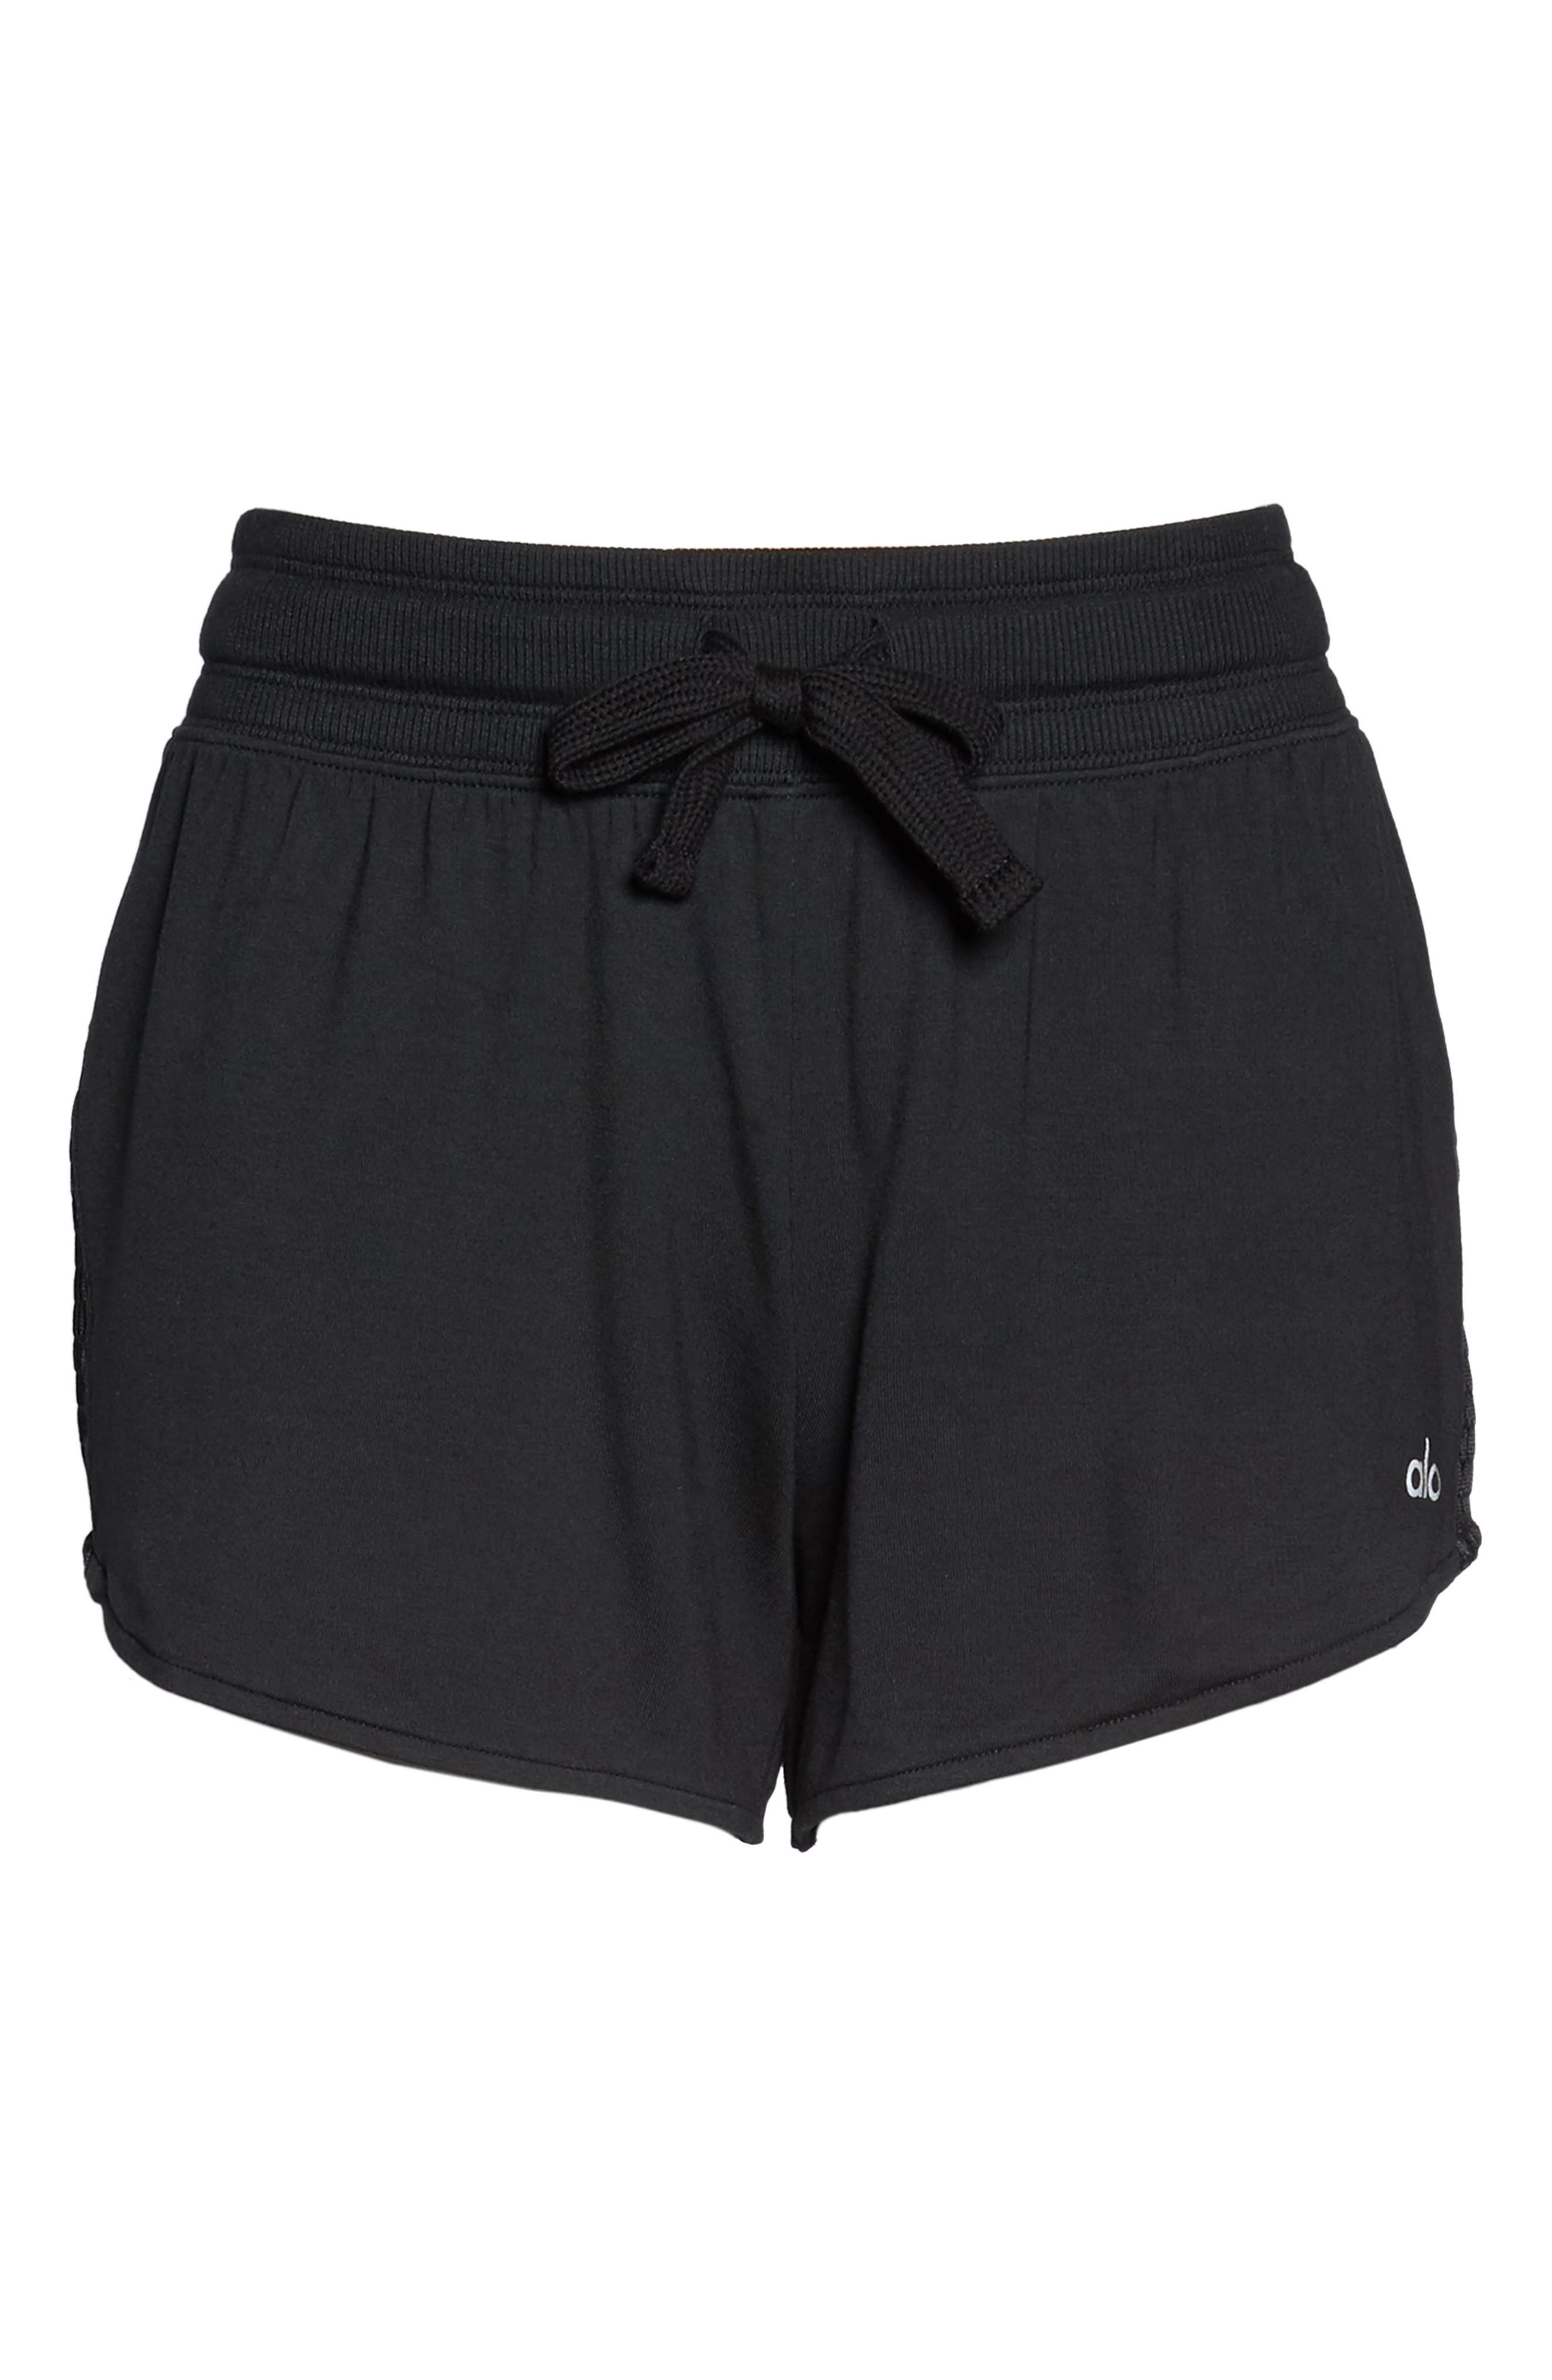 Shade Shorts,                             Alternate thumbnail 7, color,                             001